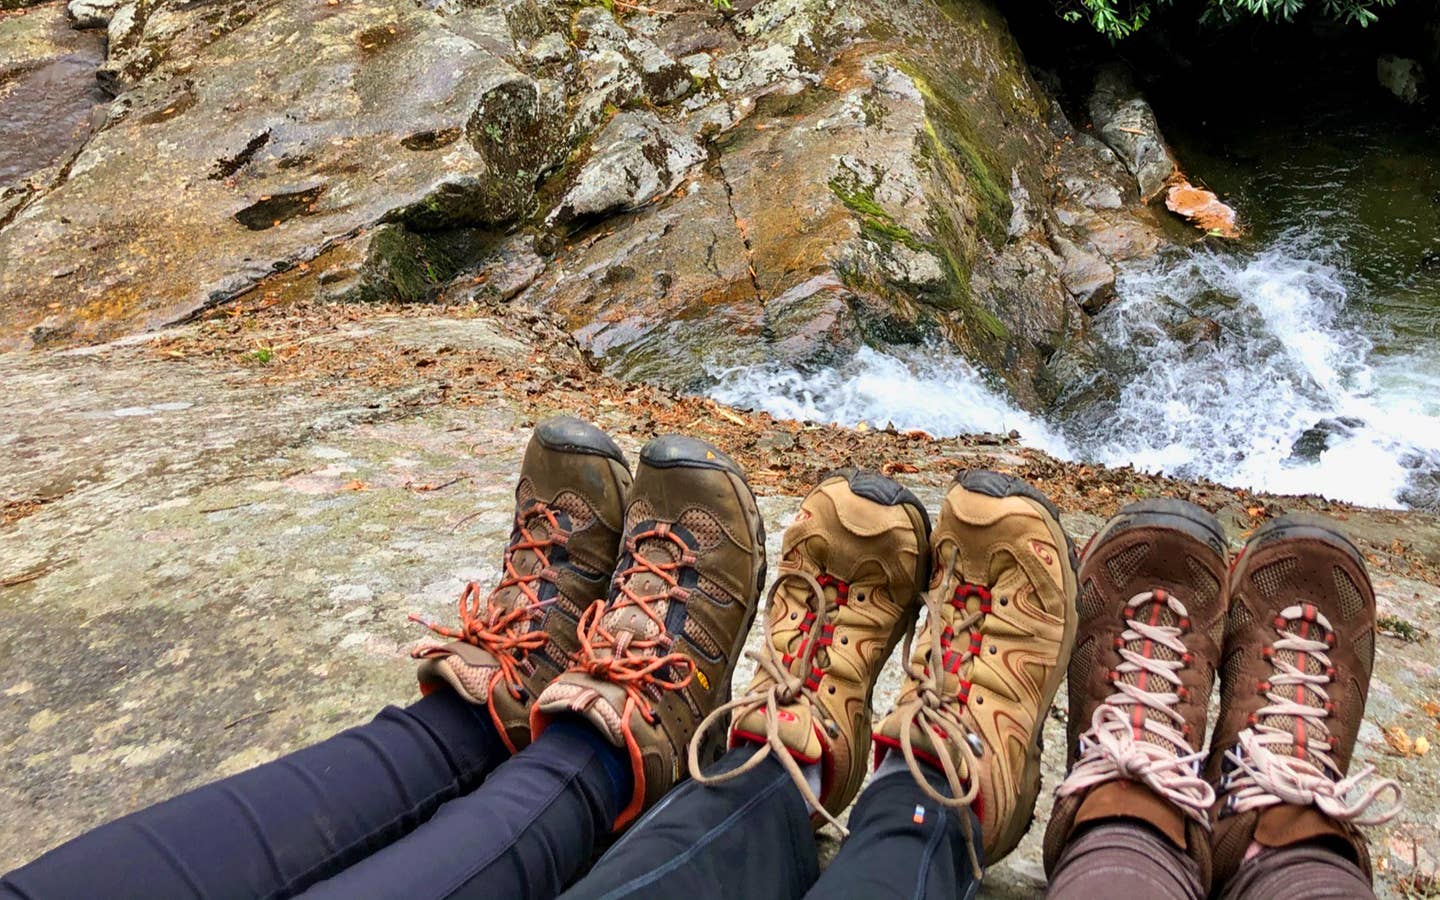 Featured Contributor, Jennifer C. Harmon (left) and her two girlfriends wear hiking boots as their feet sit near the top of a waterfall.